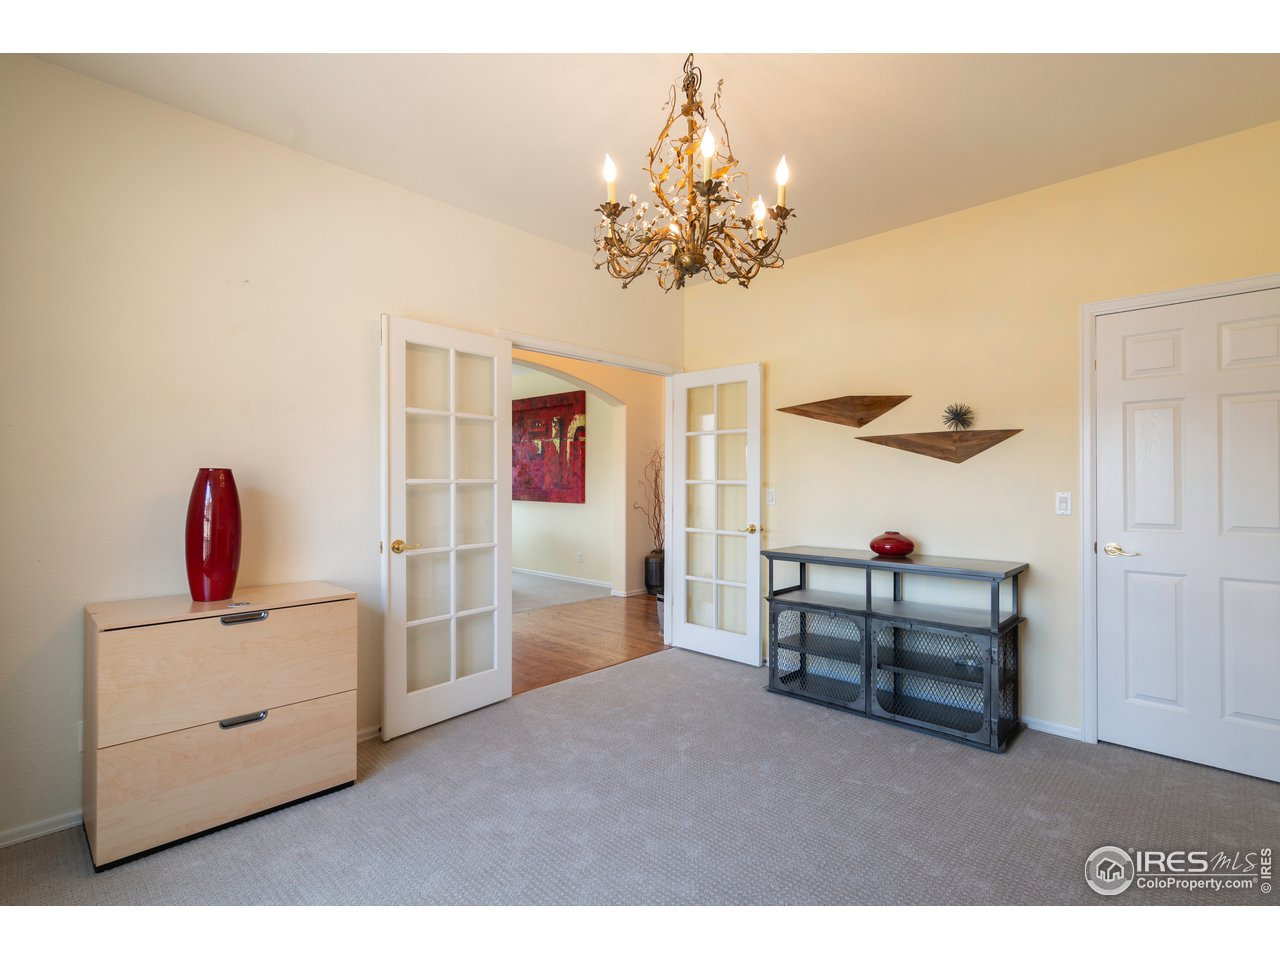 Office area has a closet and could be converted easily to a 4th bedroom